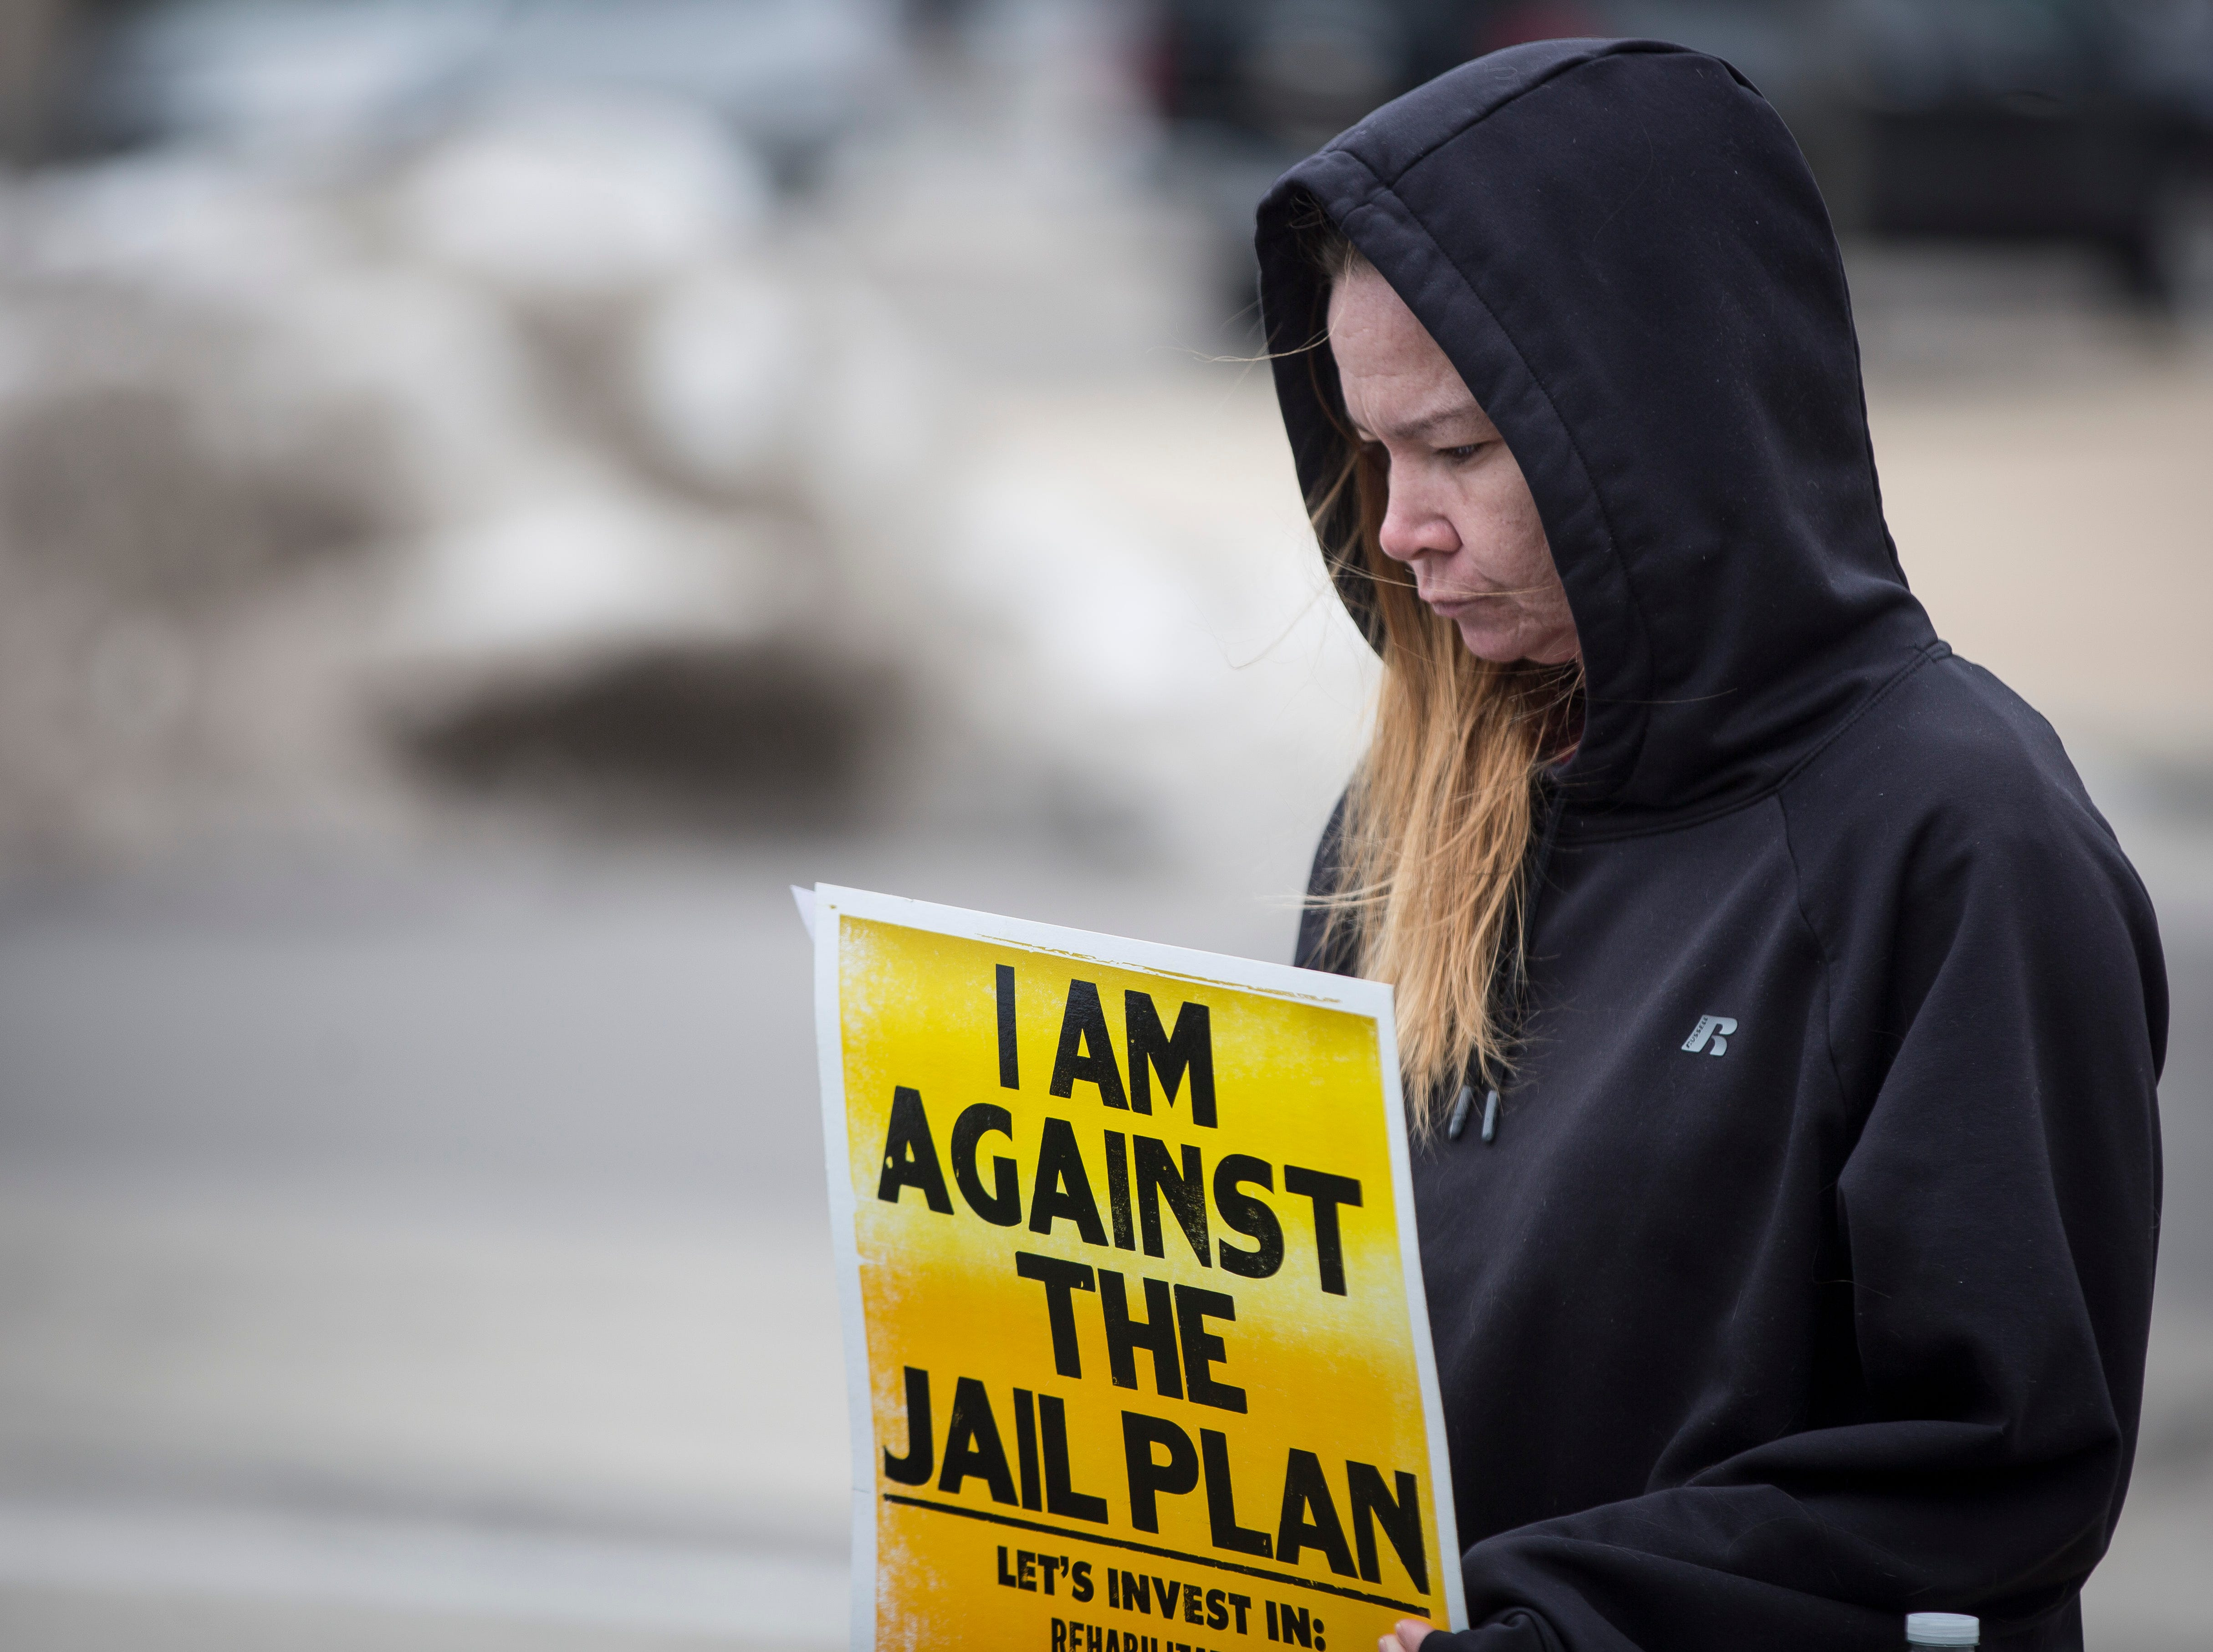 Members of the public raise signs and speak about their objections to the Delaware County jail project during a grassroots public assembly on Saturday in front of the Delaware County Justice Center. The project finances will be voted on during the county council meeting on Tuesday.